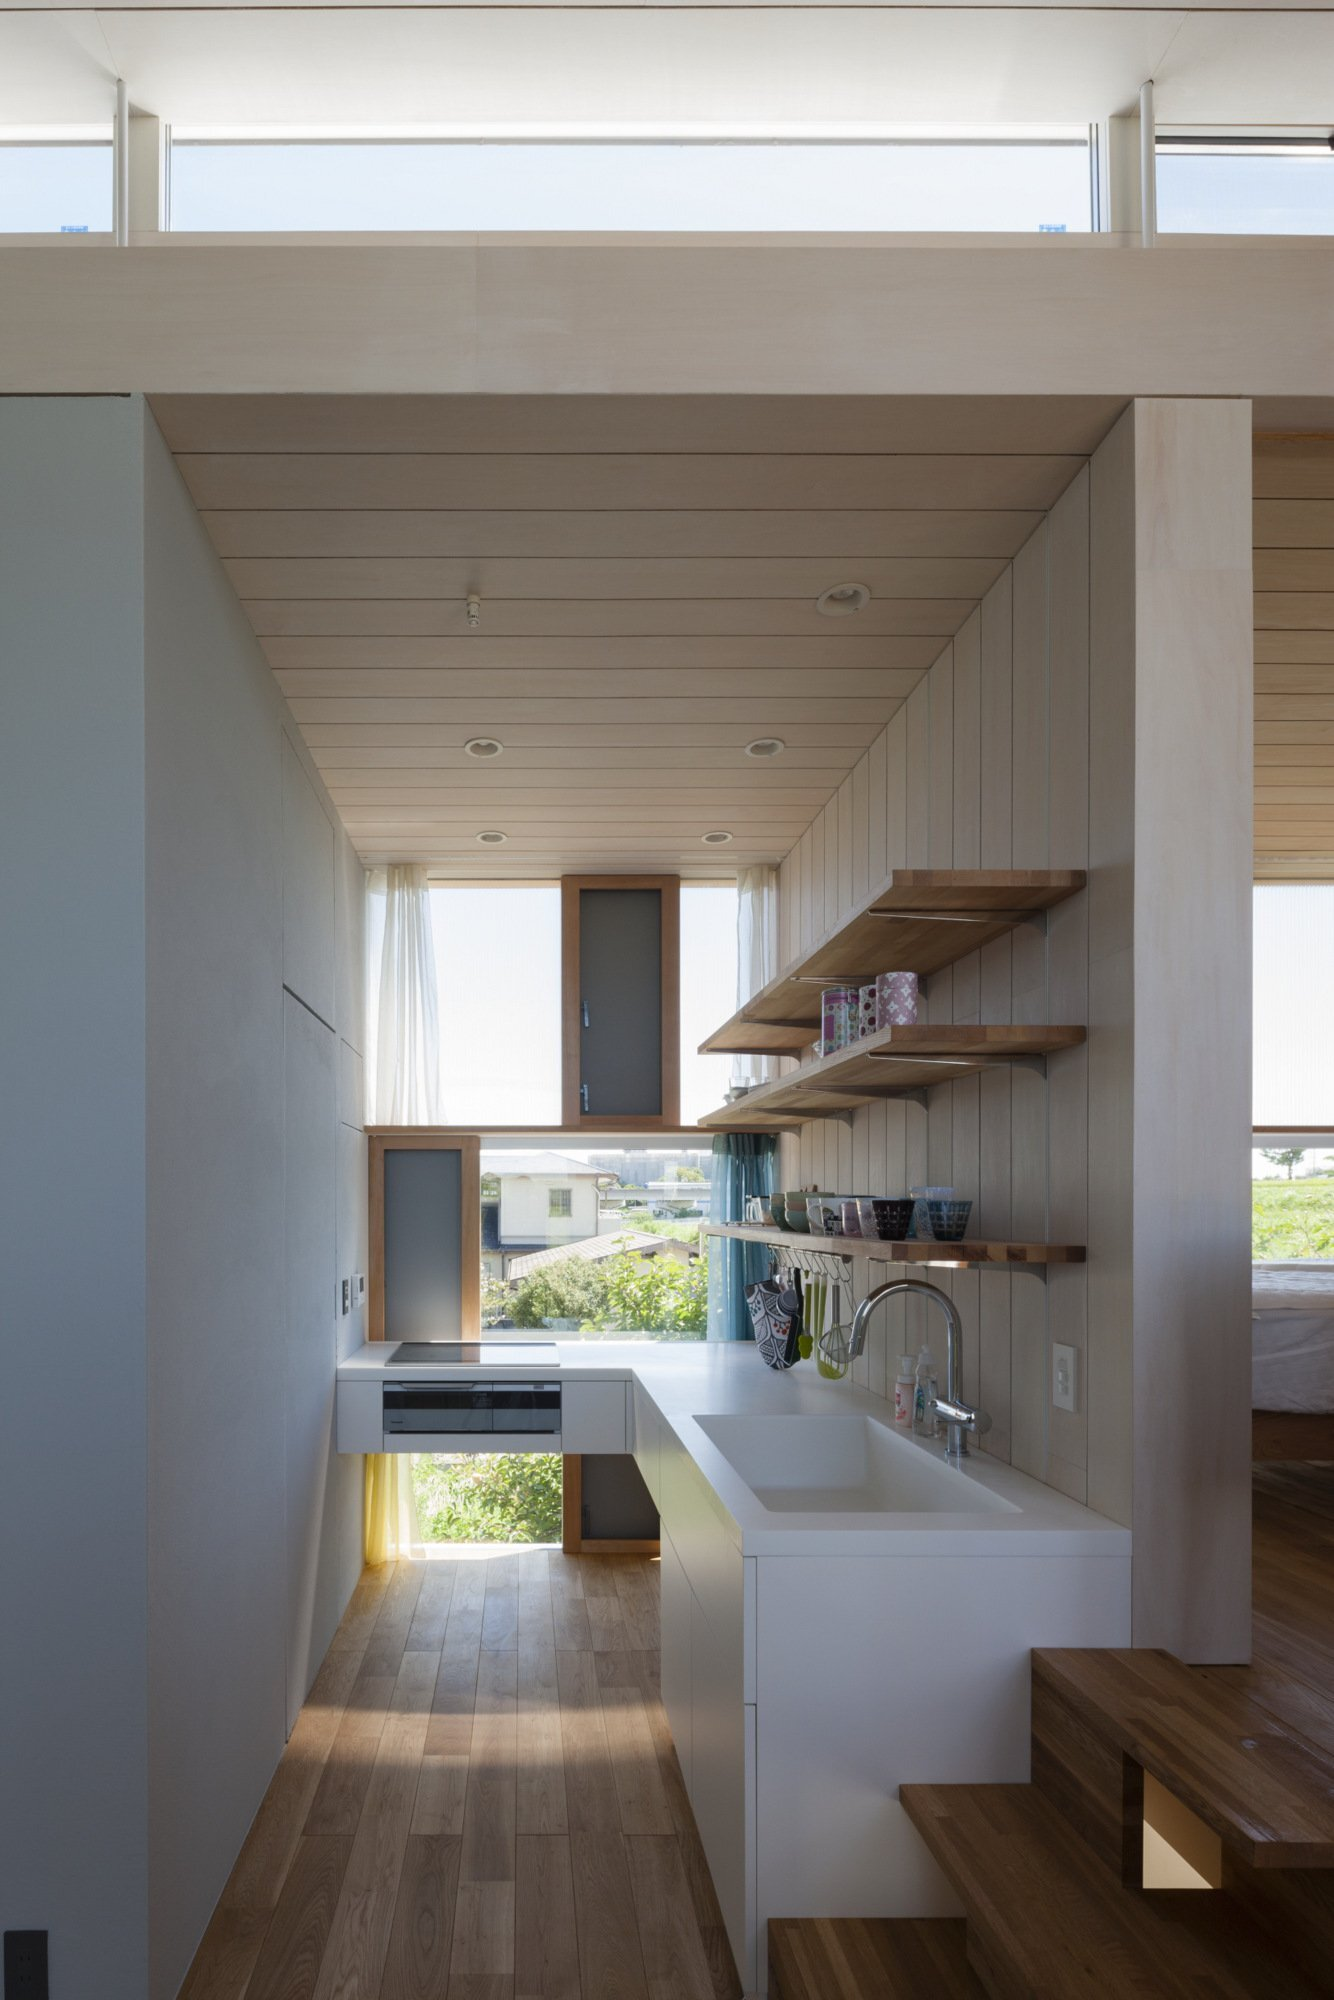 House Passage of Landscape - Japanese House - ihrmk - Toyota Japan - Kitchen - Humble Homes